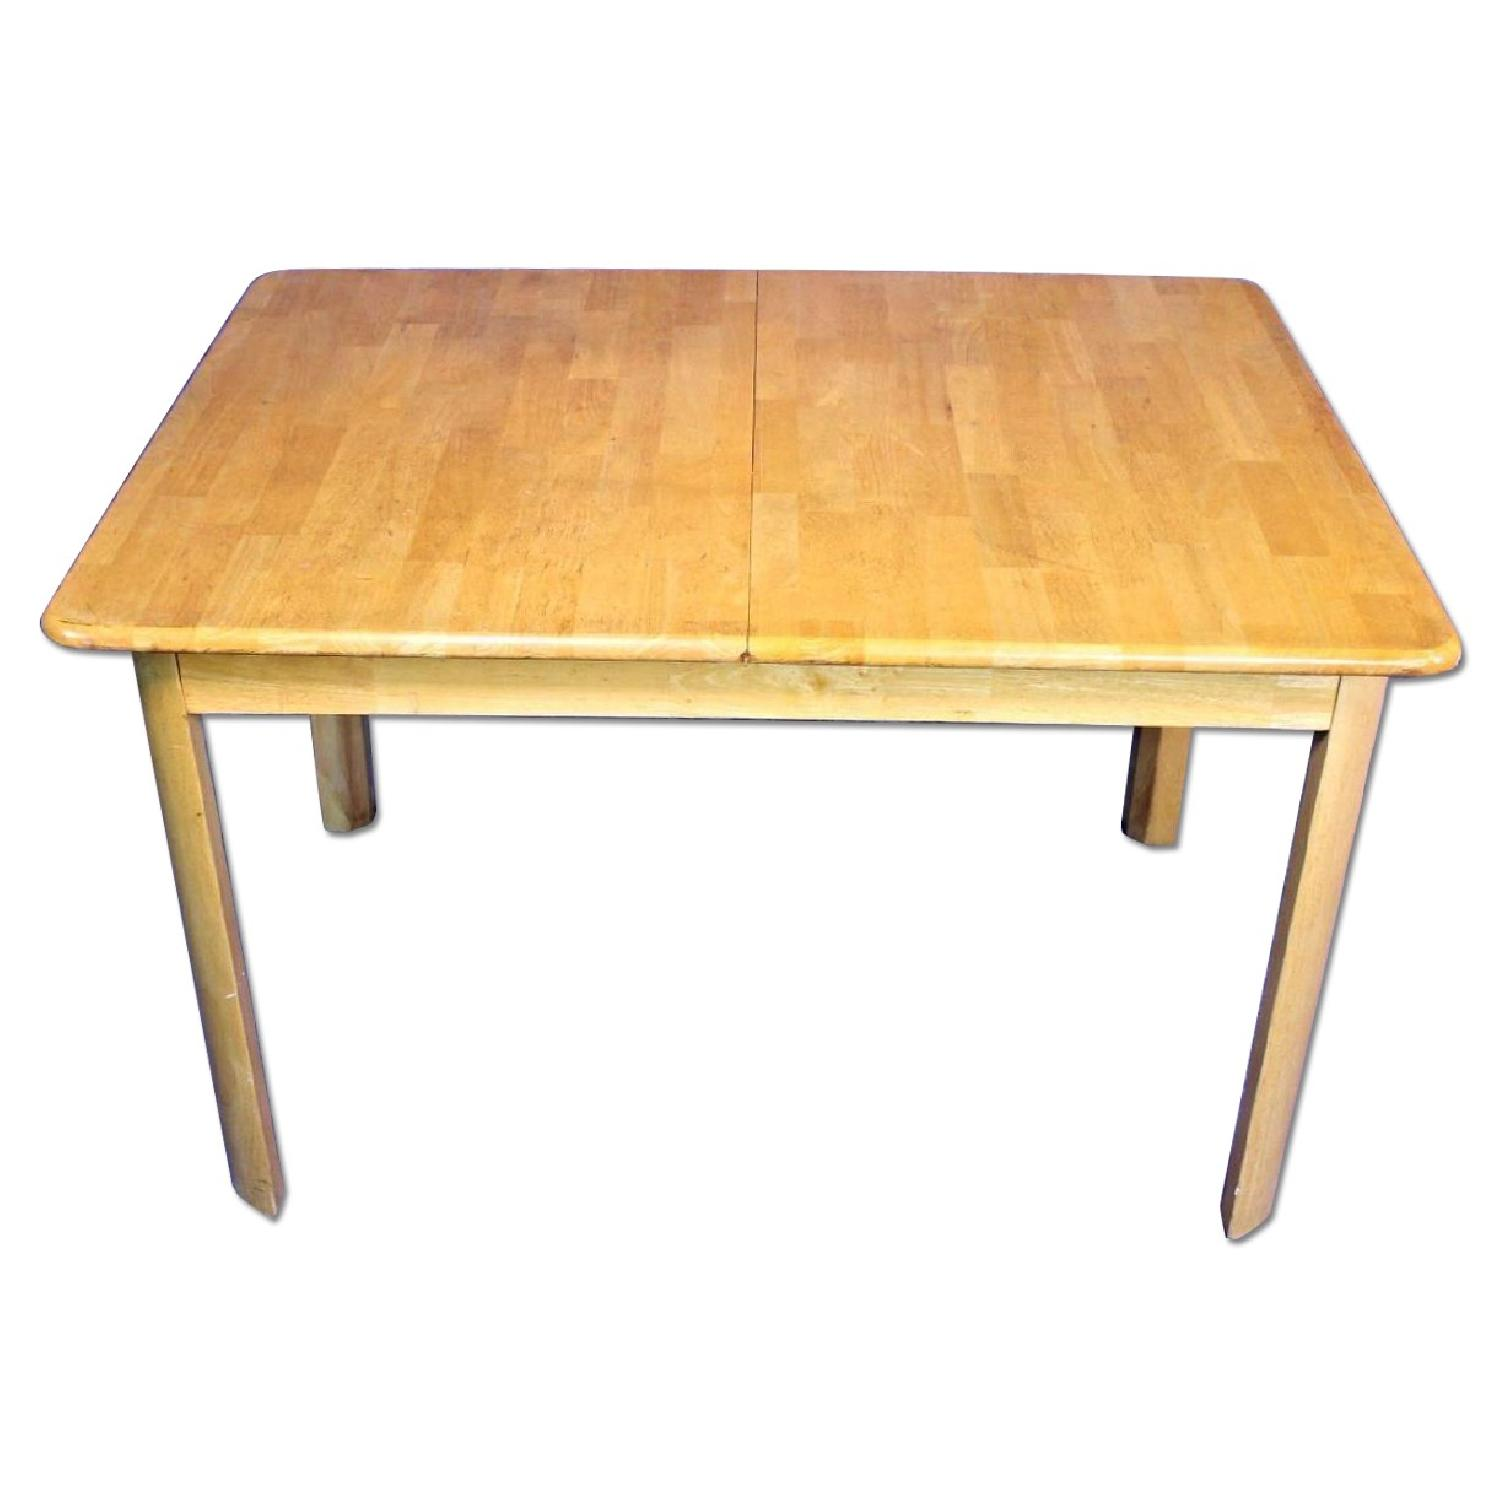 Wood Center Dining Table w/ Extension Leaf